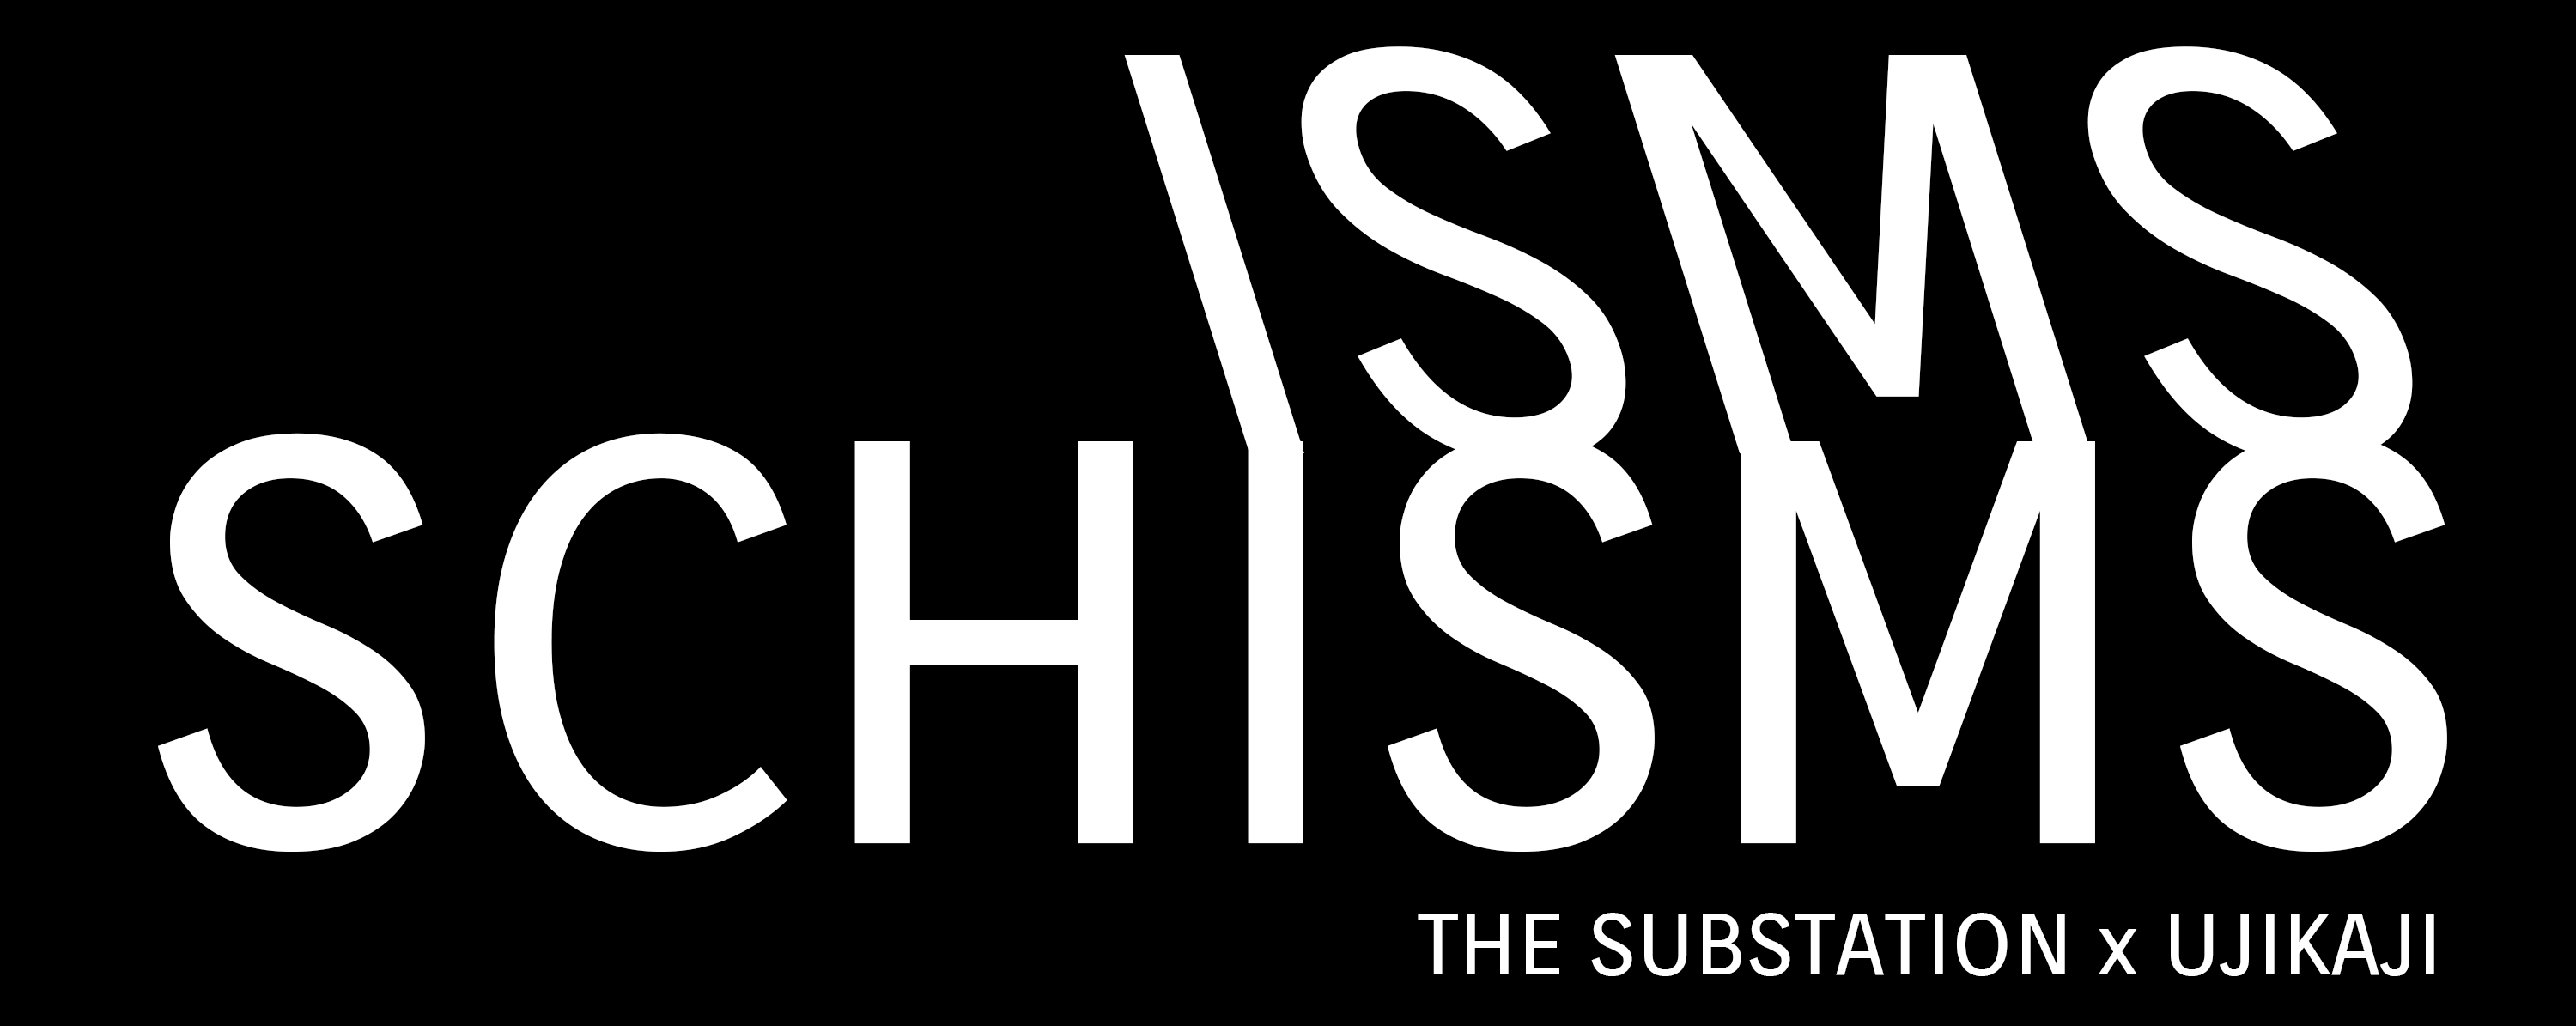 Isms and Schisms (27 & 28 August)